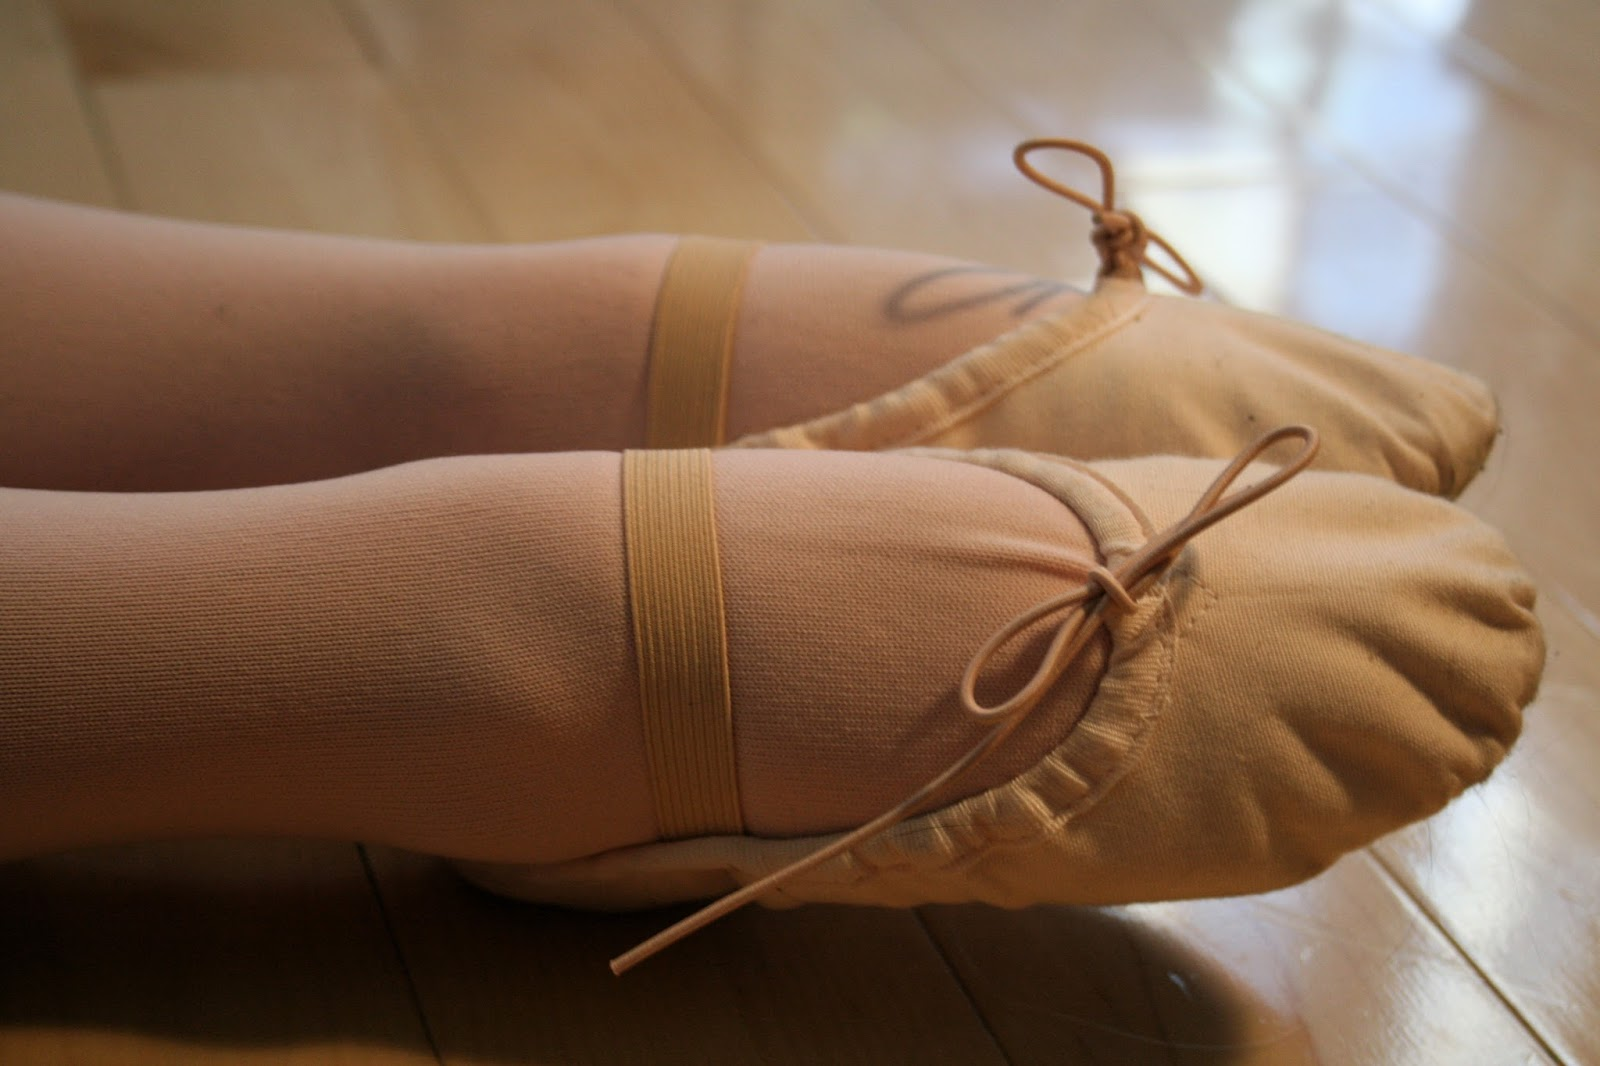 Lecker footjob in hot ballerina ballet slippers with sweetundgeil